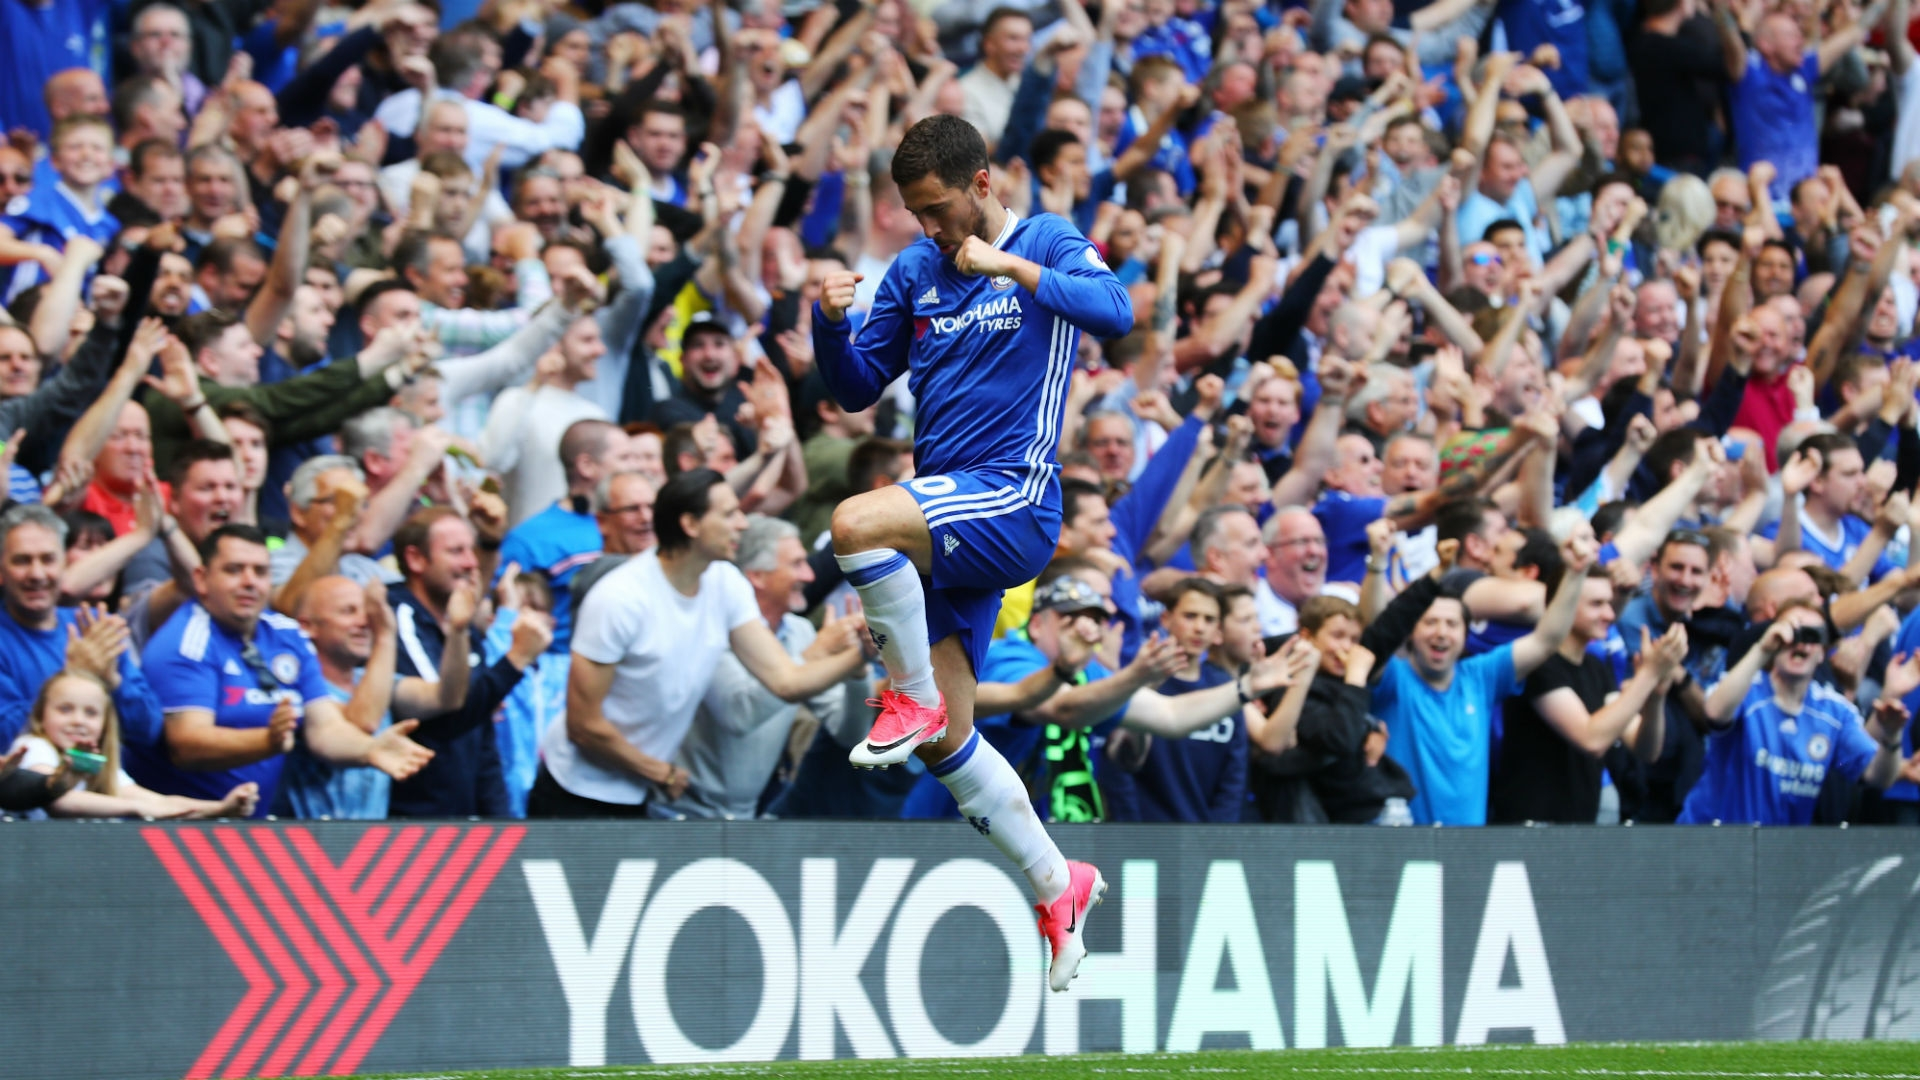 Hazard won the Premier League title with Chelsea this season